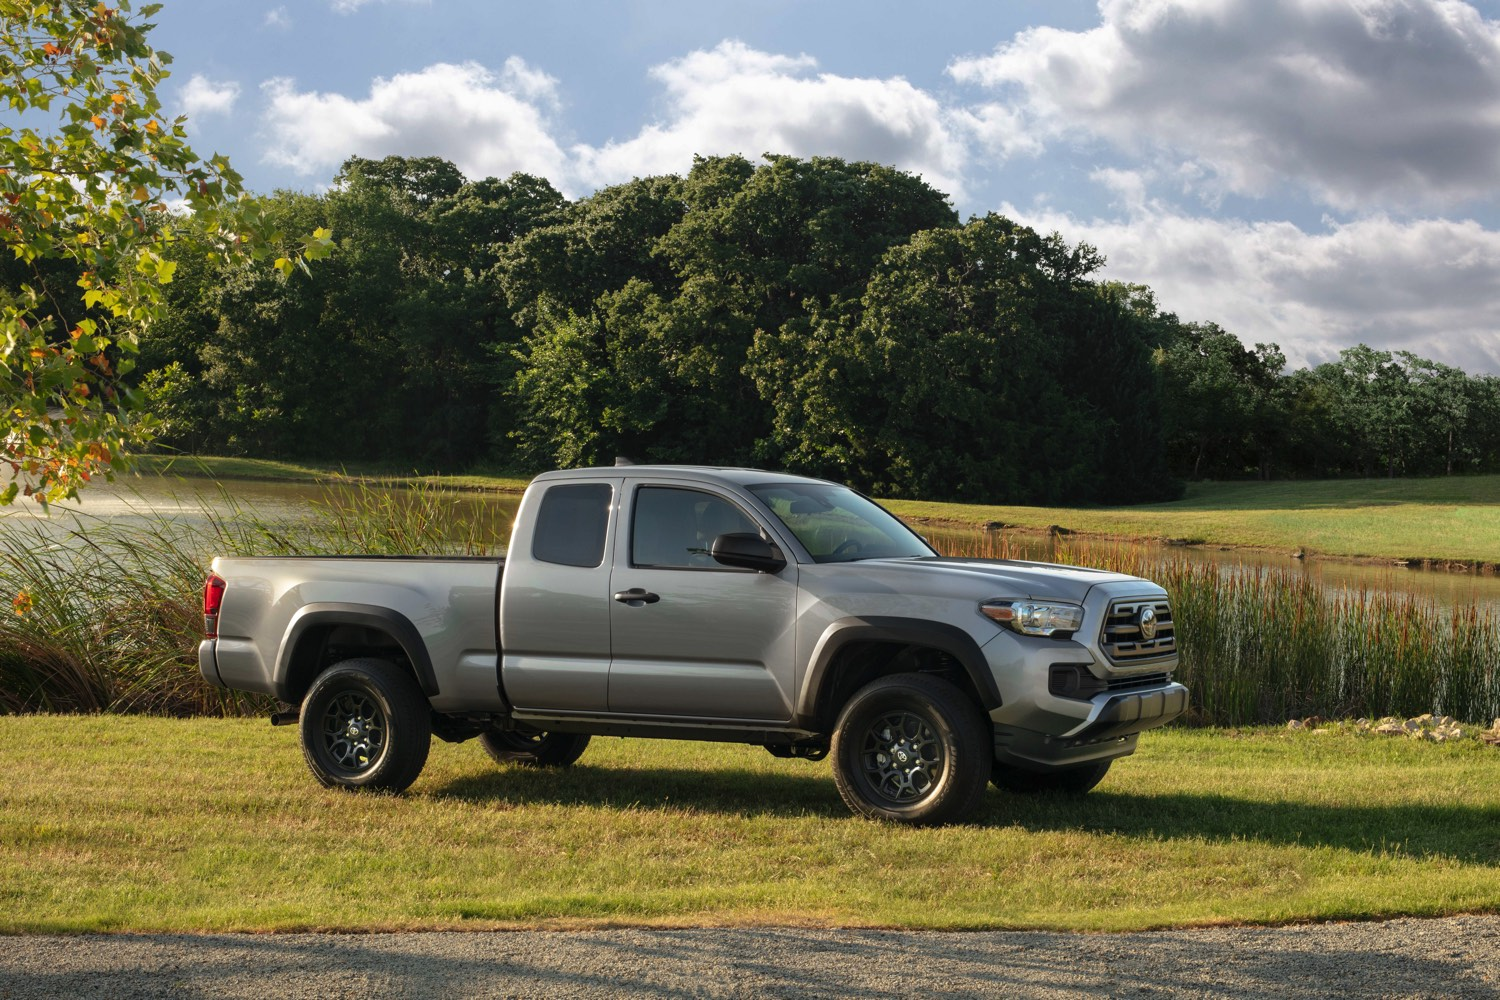 Build A Tacoma >> Toyota S 2019 Tacoma You Build Yours We Build Ours Txgarage